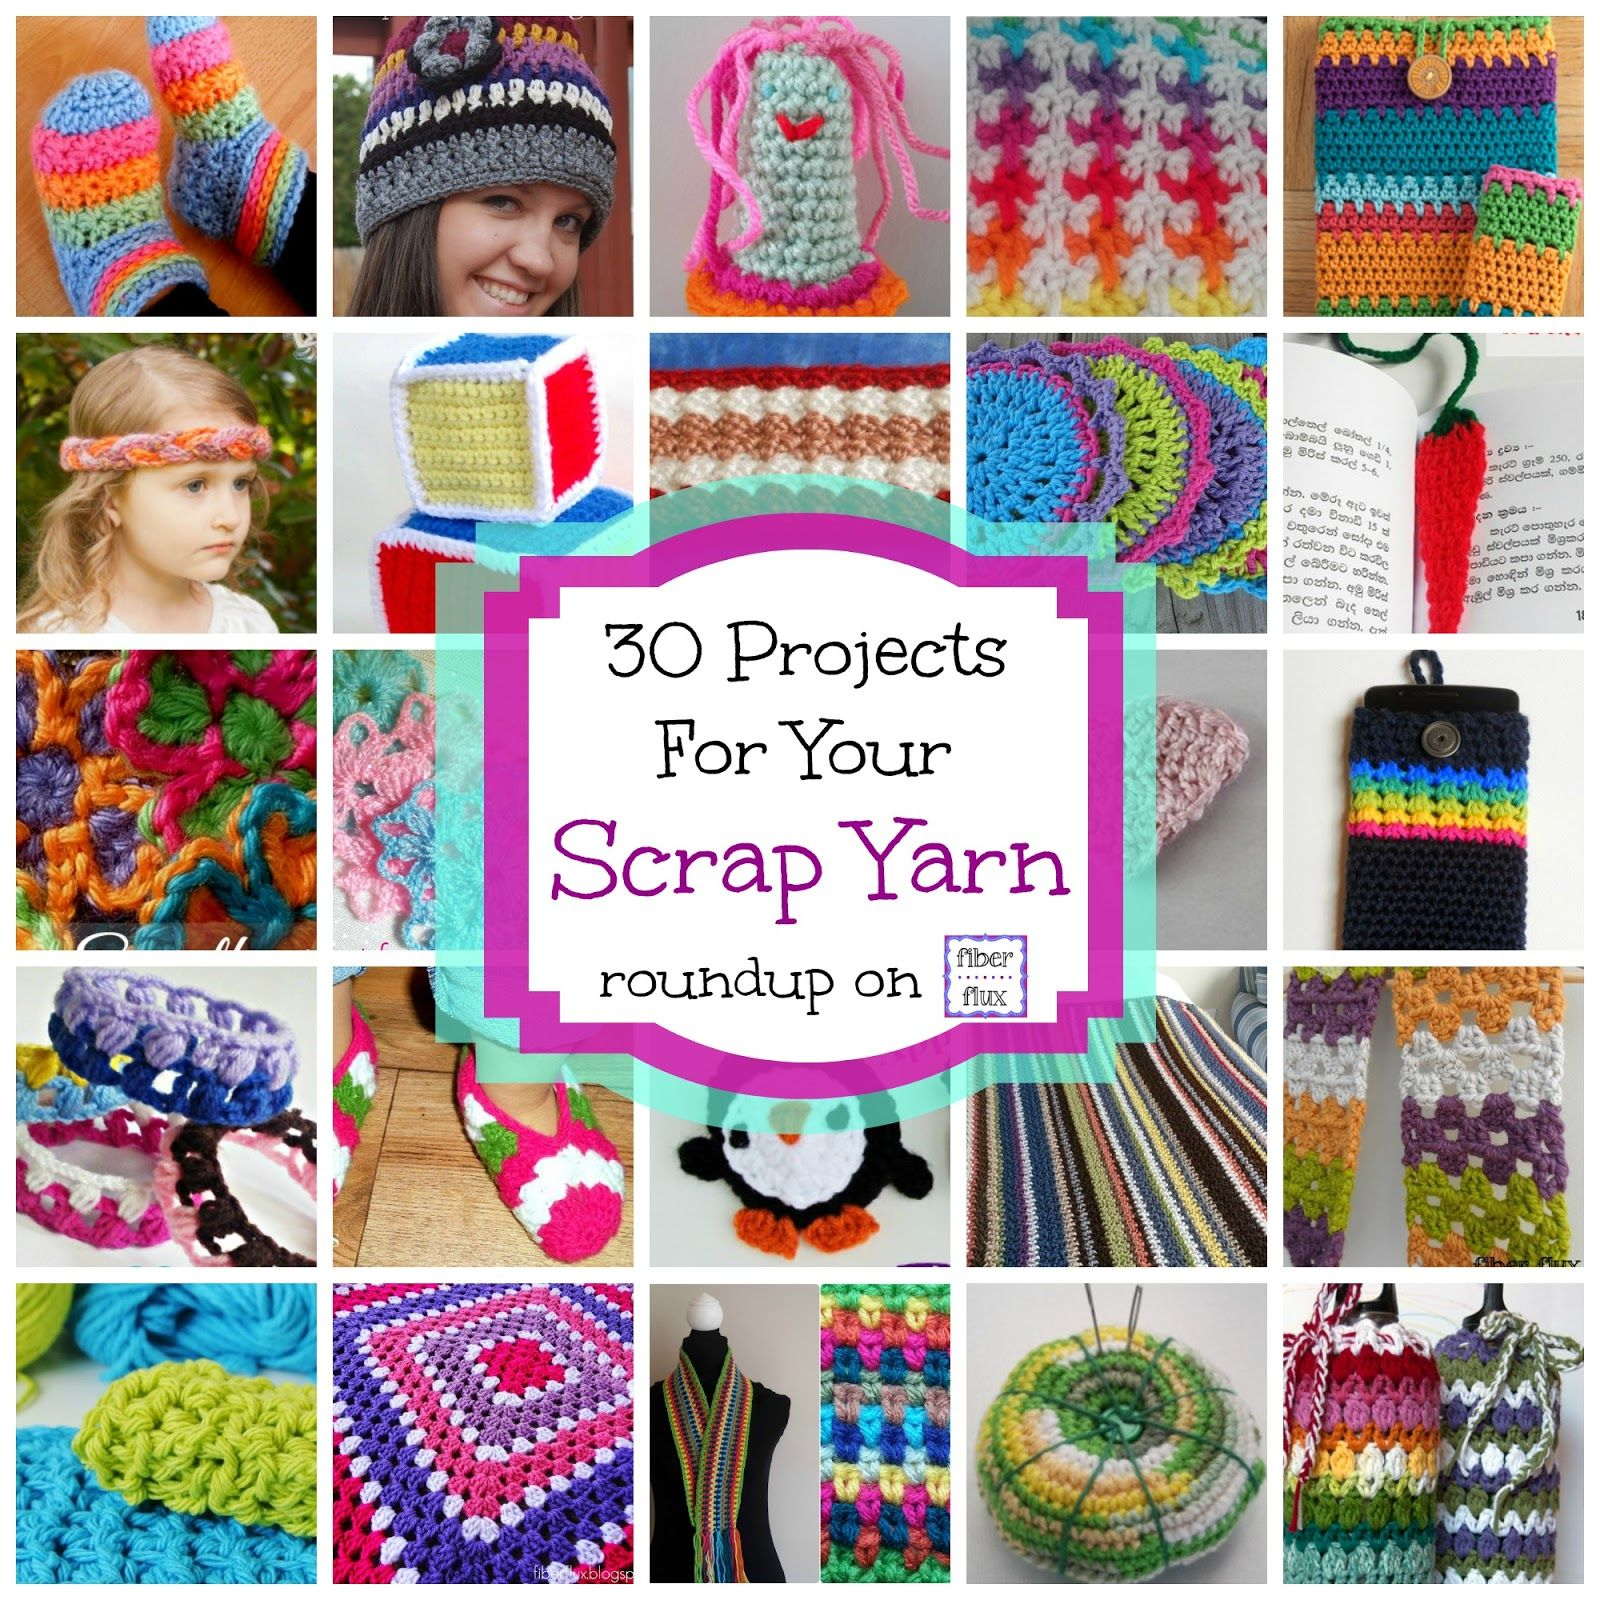 30 Free Crochet Projects for Your Scrap Yarn, roundup on Fiber Flux ...